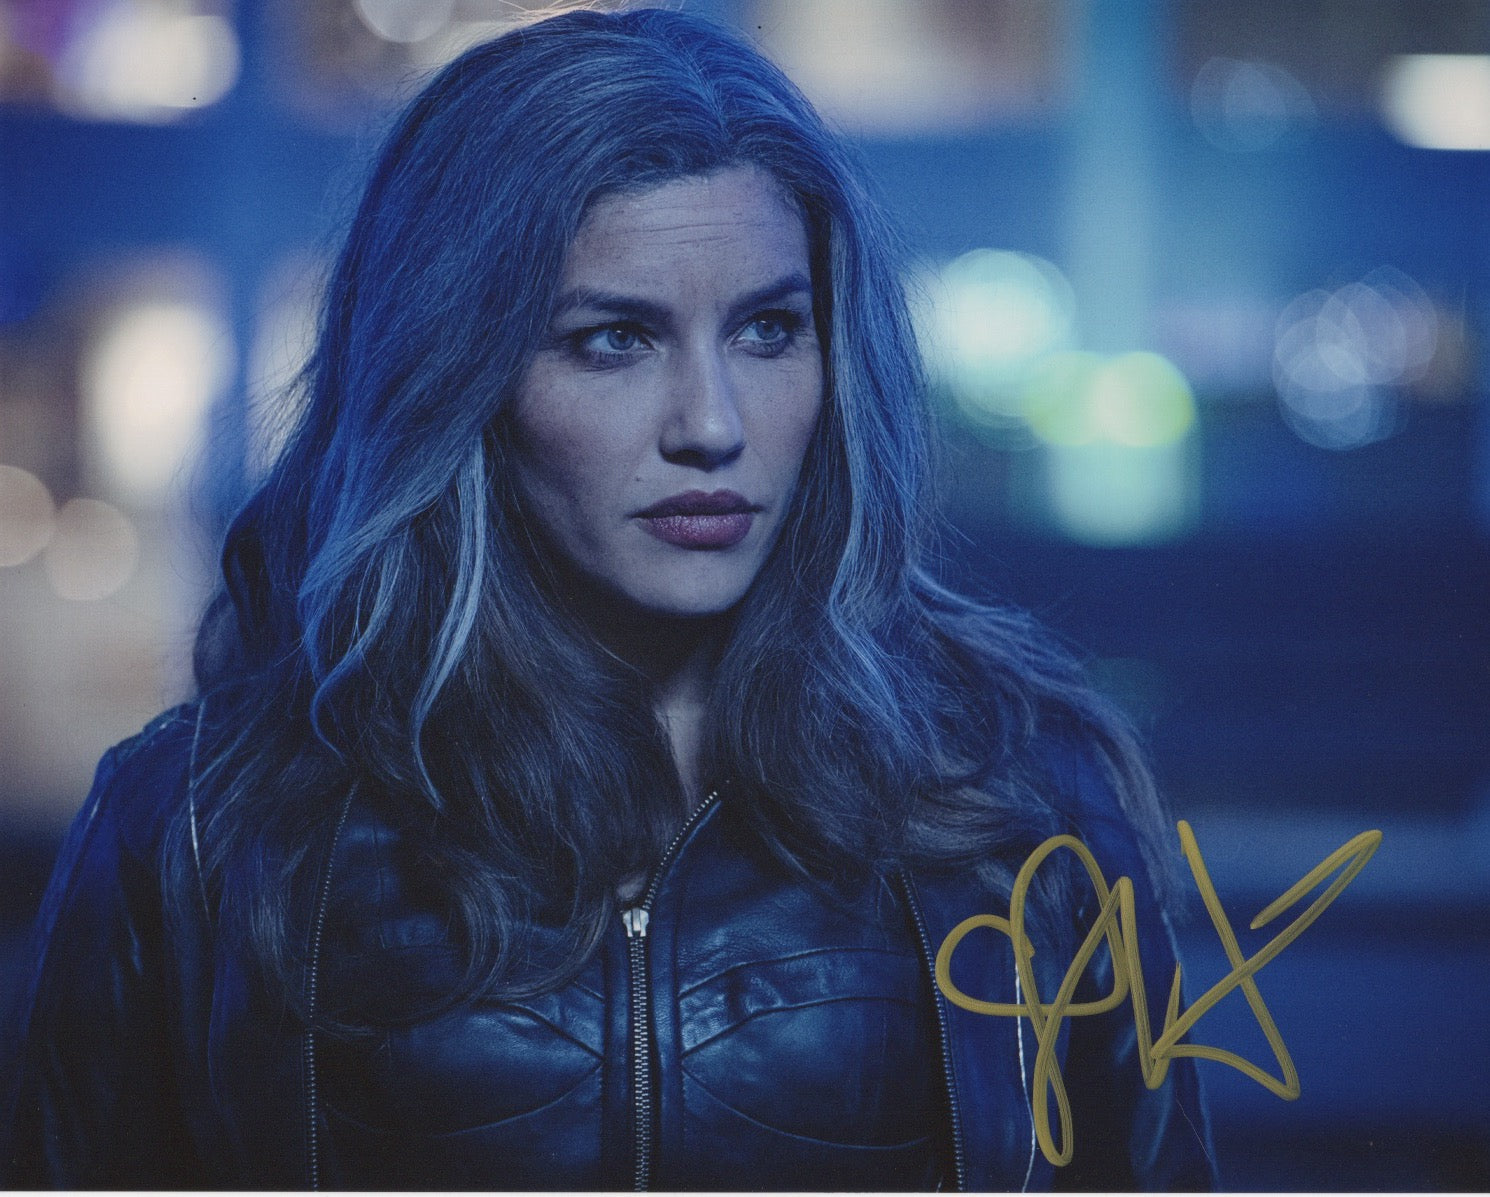 Juliana Harkavy Arrow Signed Autograph 8x10 Photo #2 - Outlaw Hobbies Authentic Autographs